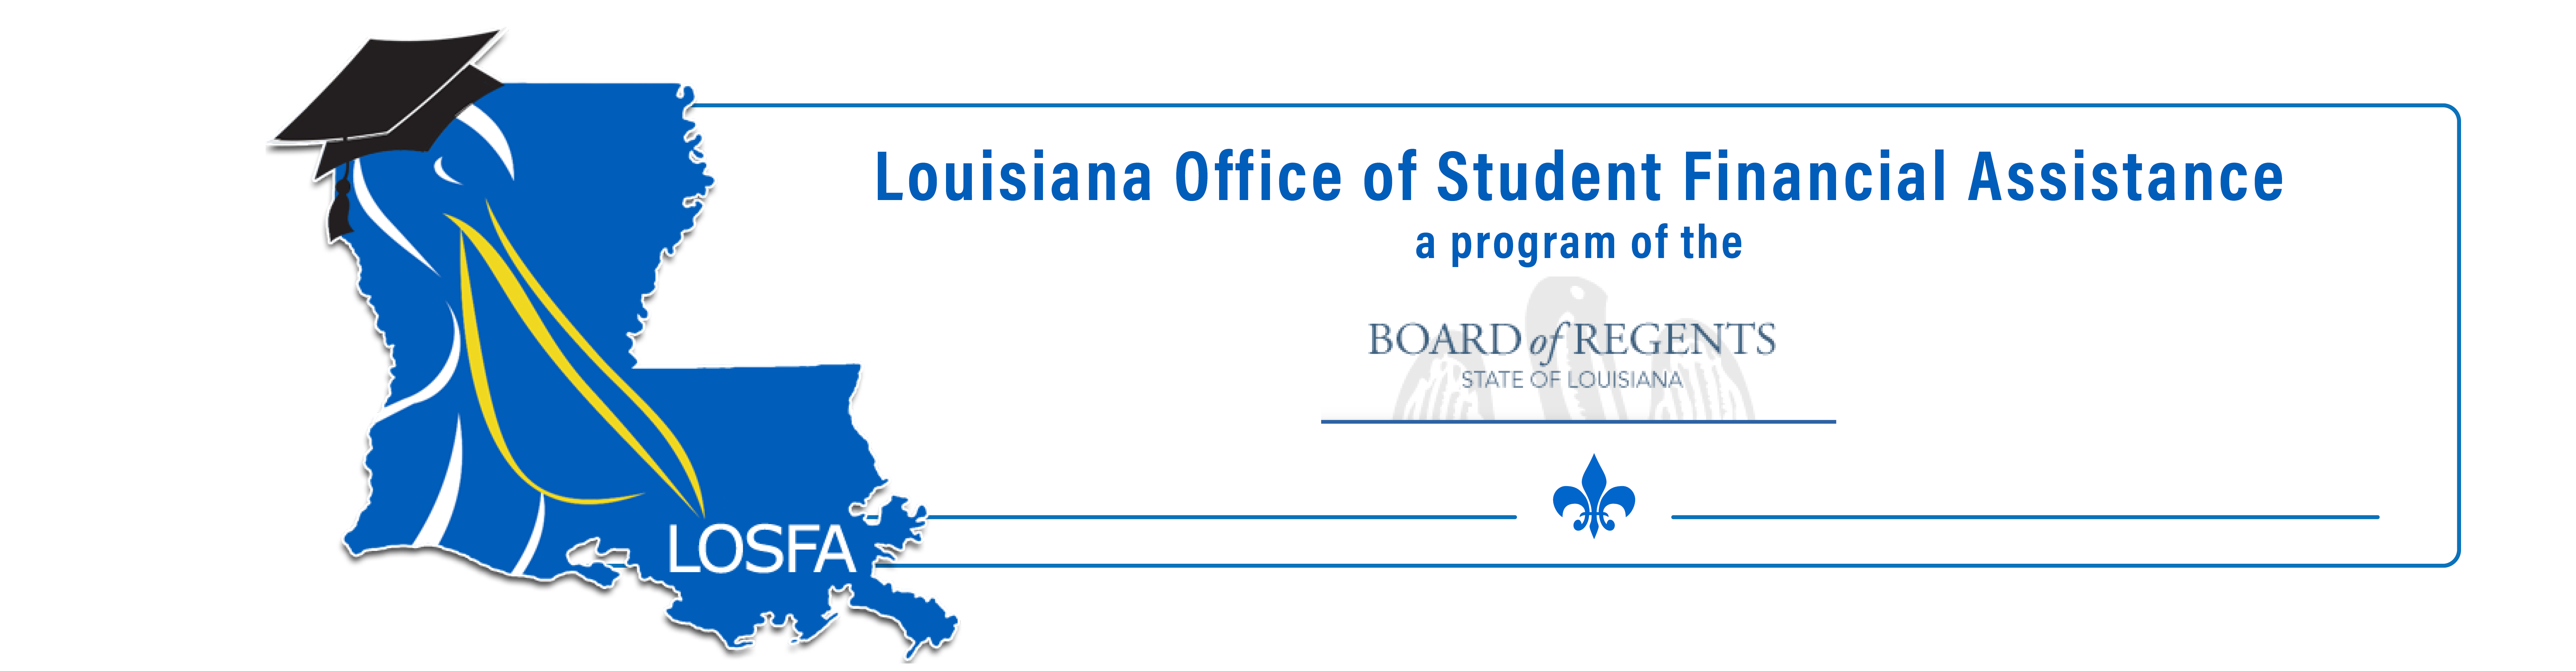 LOSFA - The Louisiana Office of Student Financial Assistance